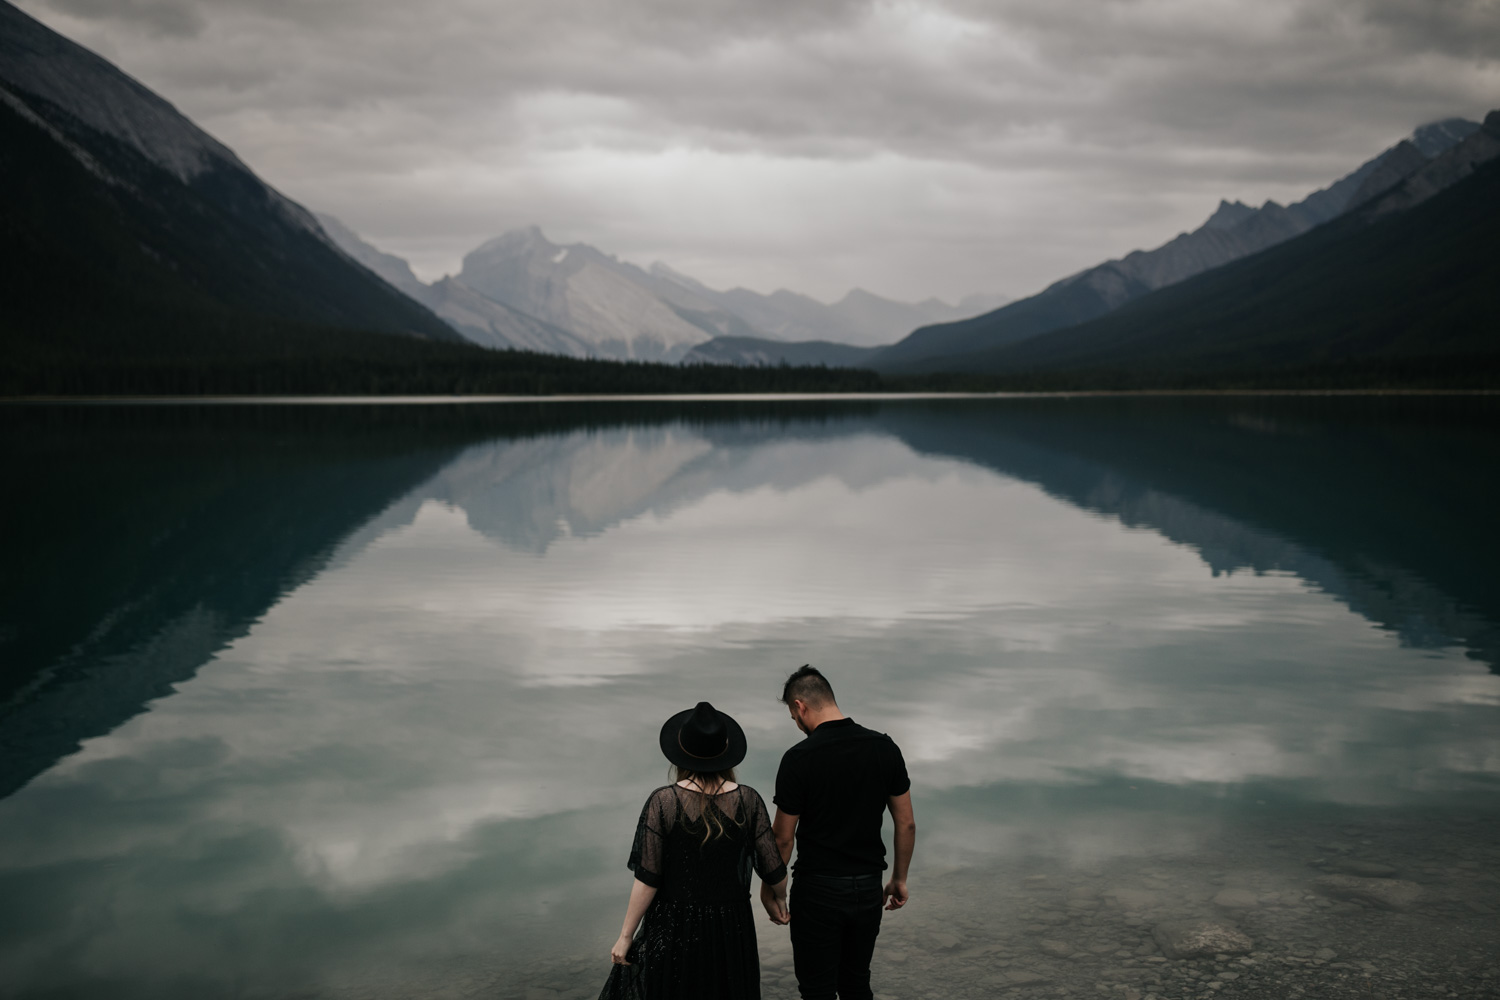 Boho Hipster Couple Stand In Front Of Turquoise Blue Lake Louise With Mountain Views